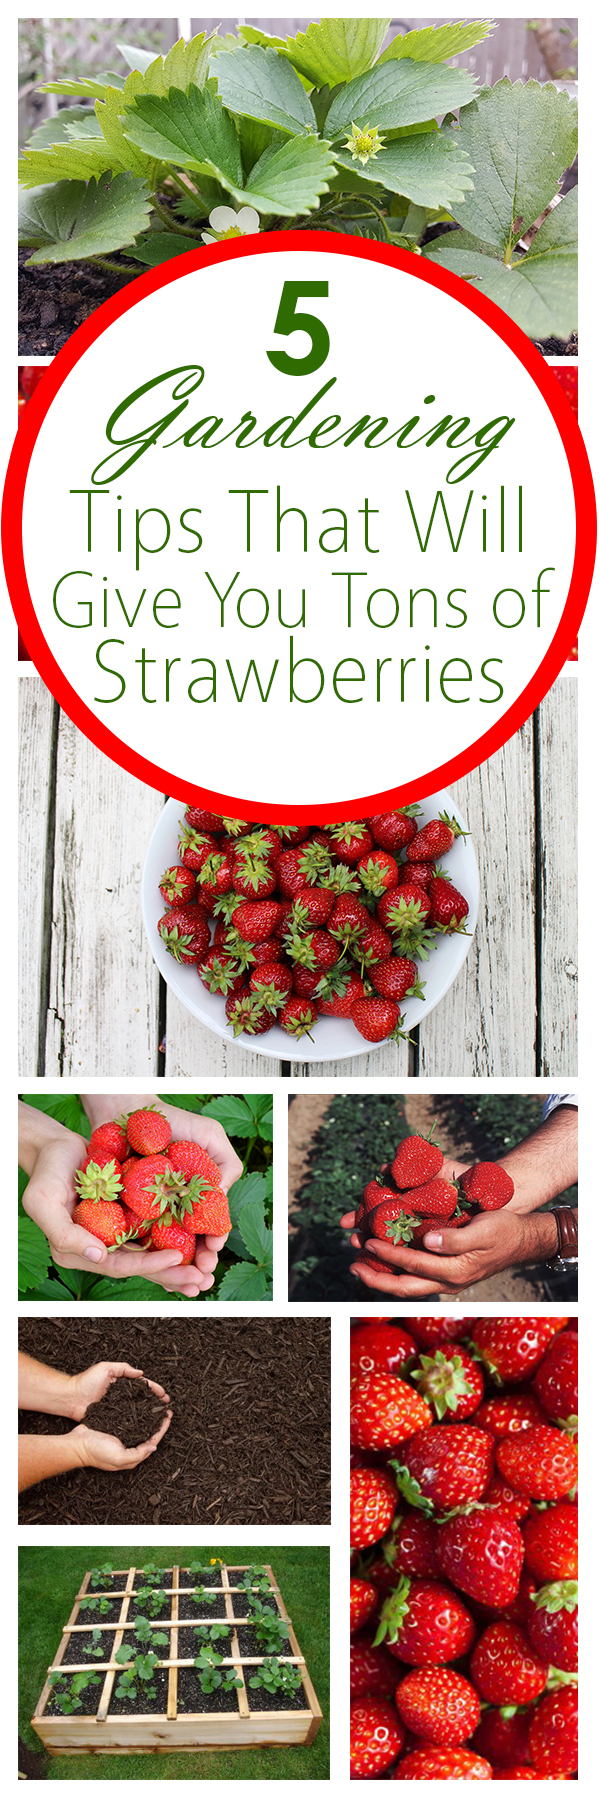 Gardening, home garden, garden hacks, garden tips and tricks, growing plants, plants, vegetable gardening, planting fruit, flower garden, outdoor living, fruit gardening, how to grow strawberries, strawberry growing tips.